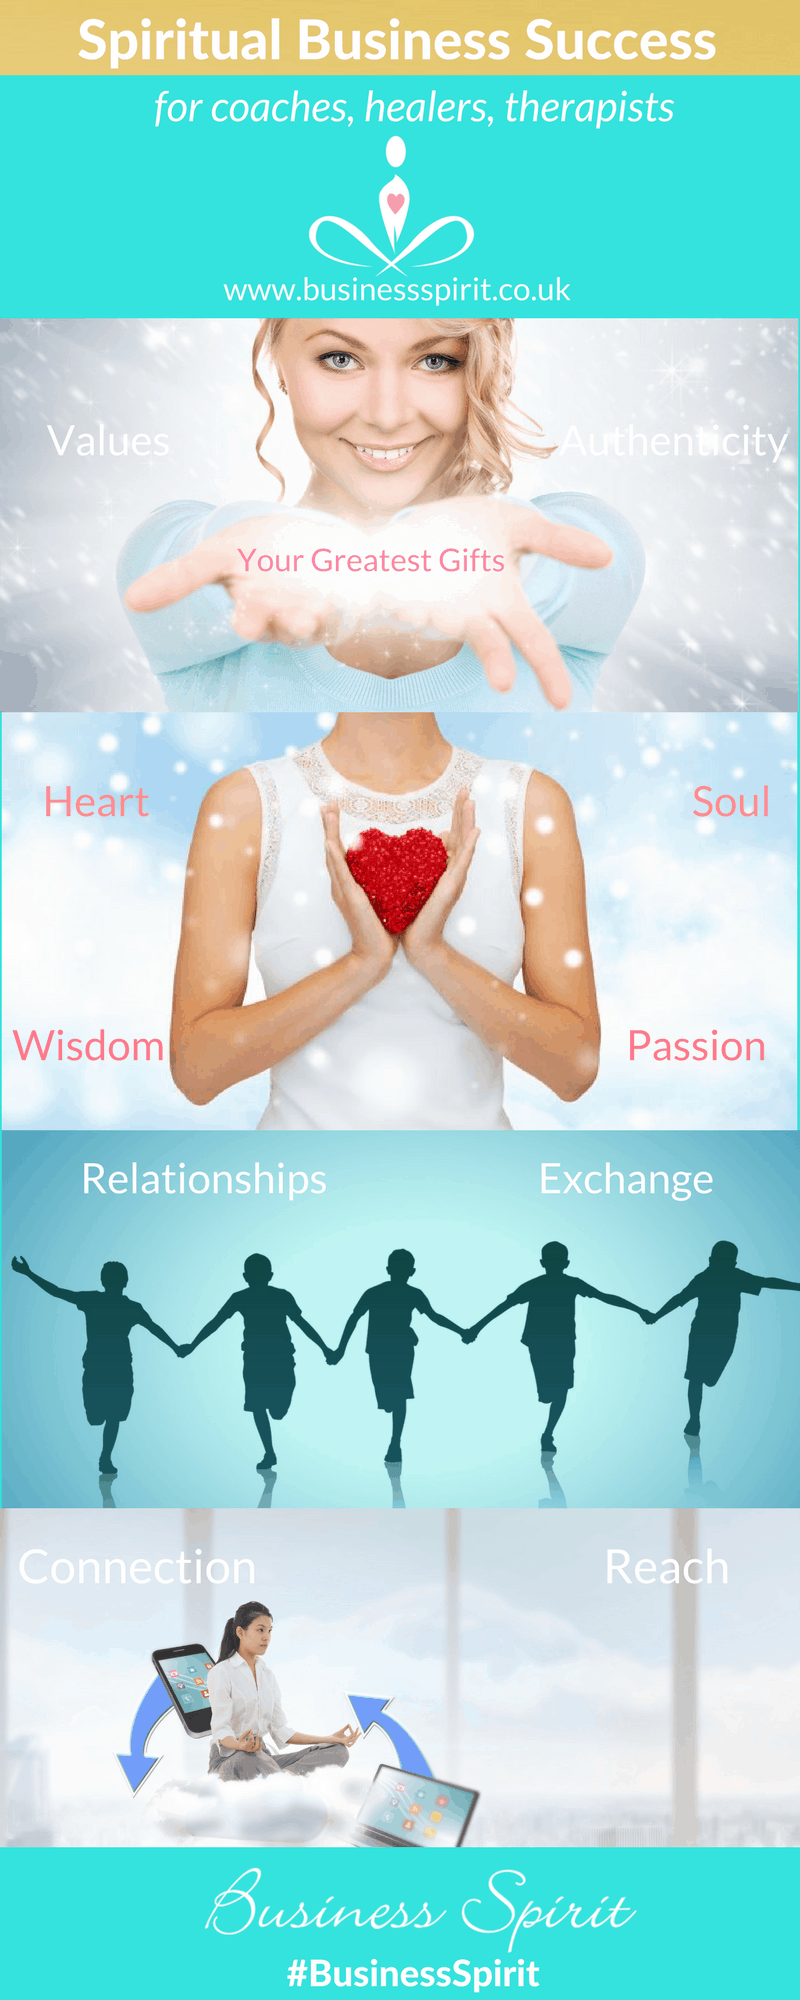 What Is The Heart Of A Successful Spiritual Business